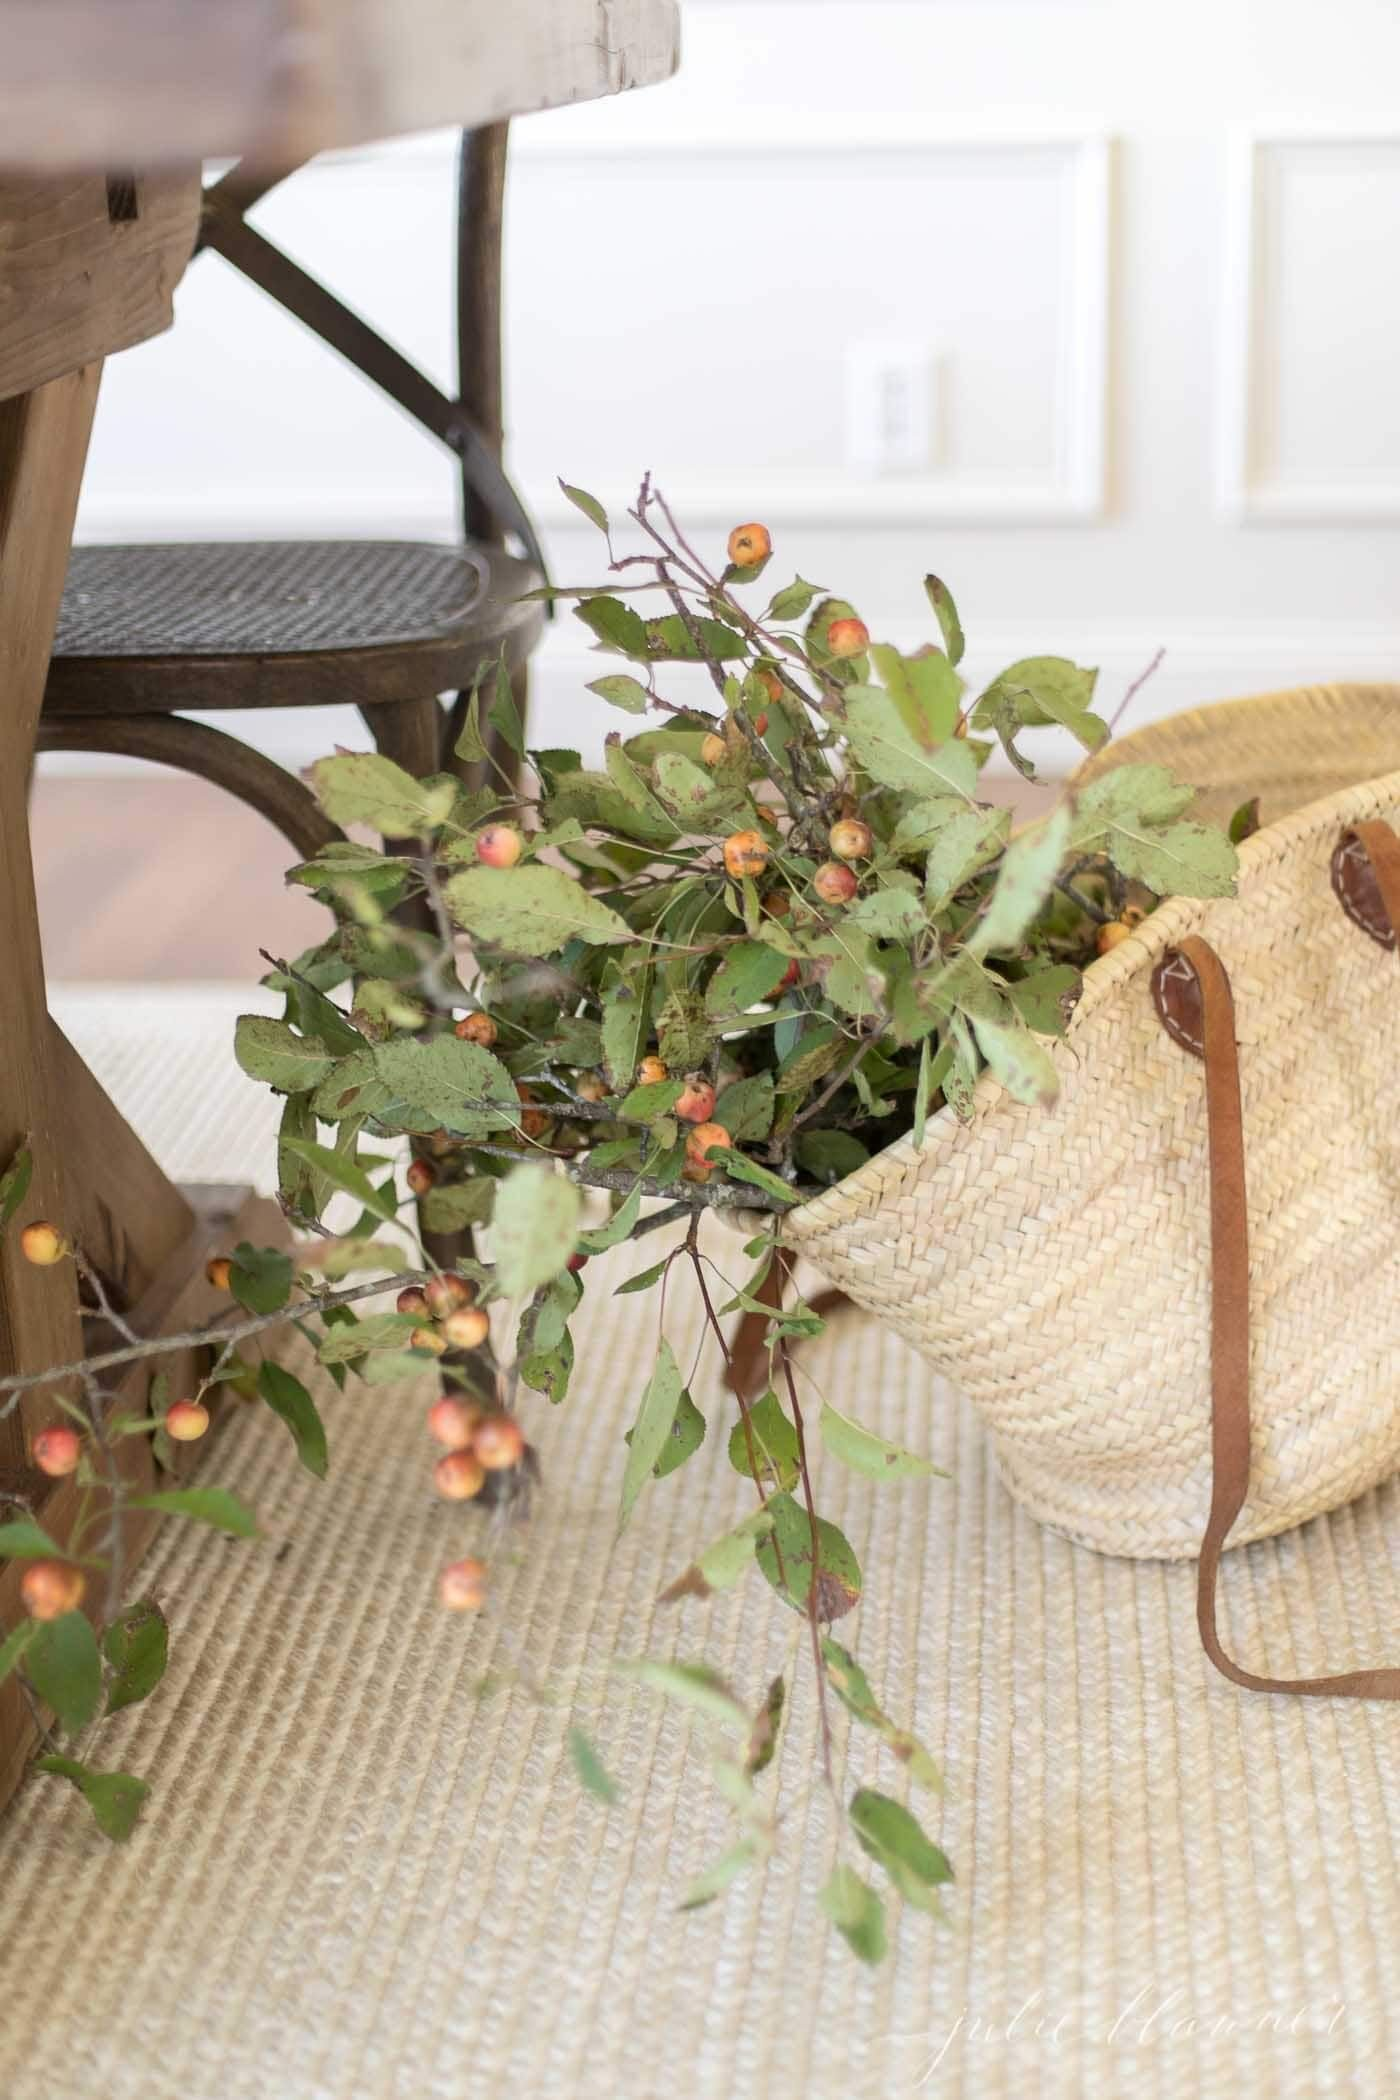 Straw tote full of fall branches with berries.